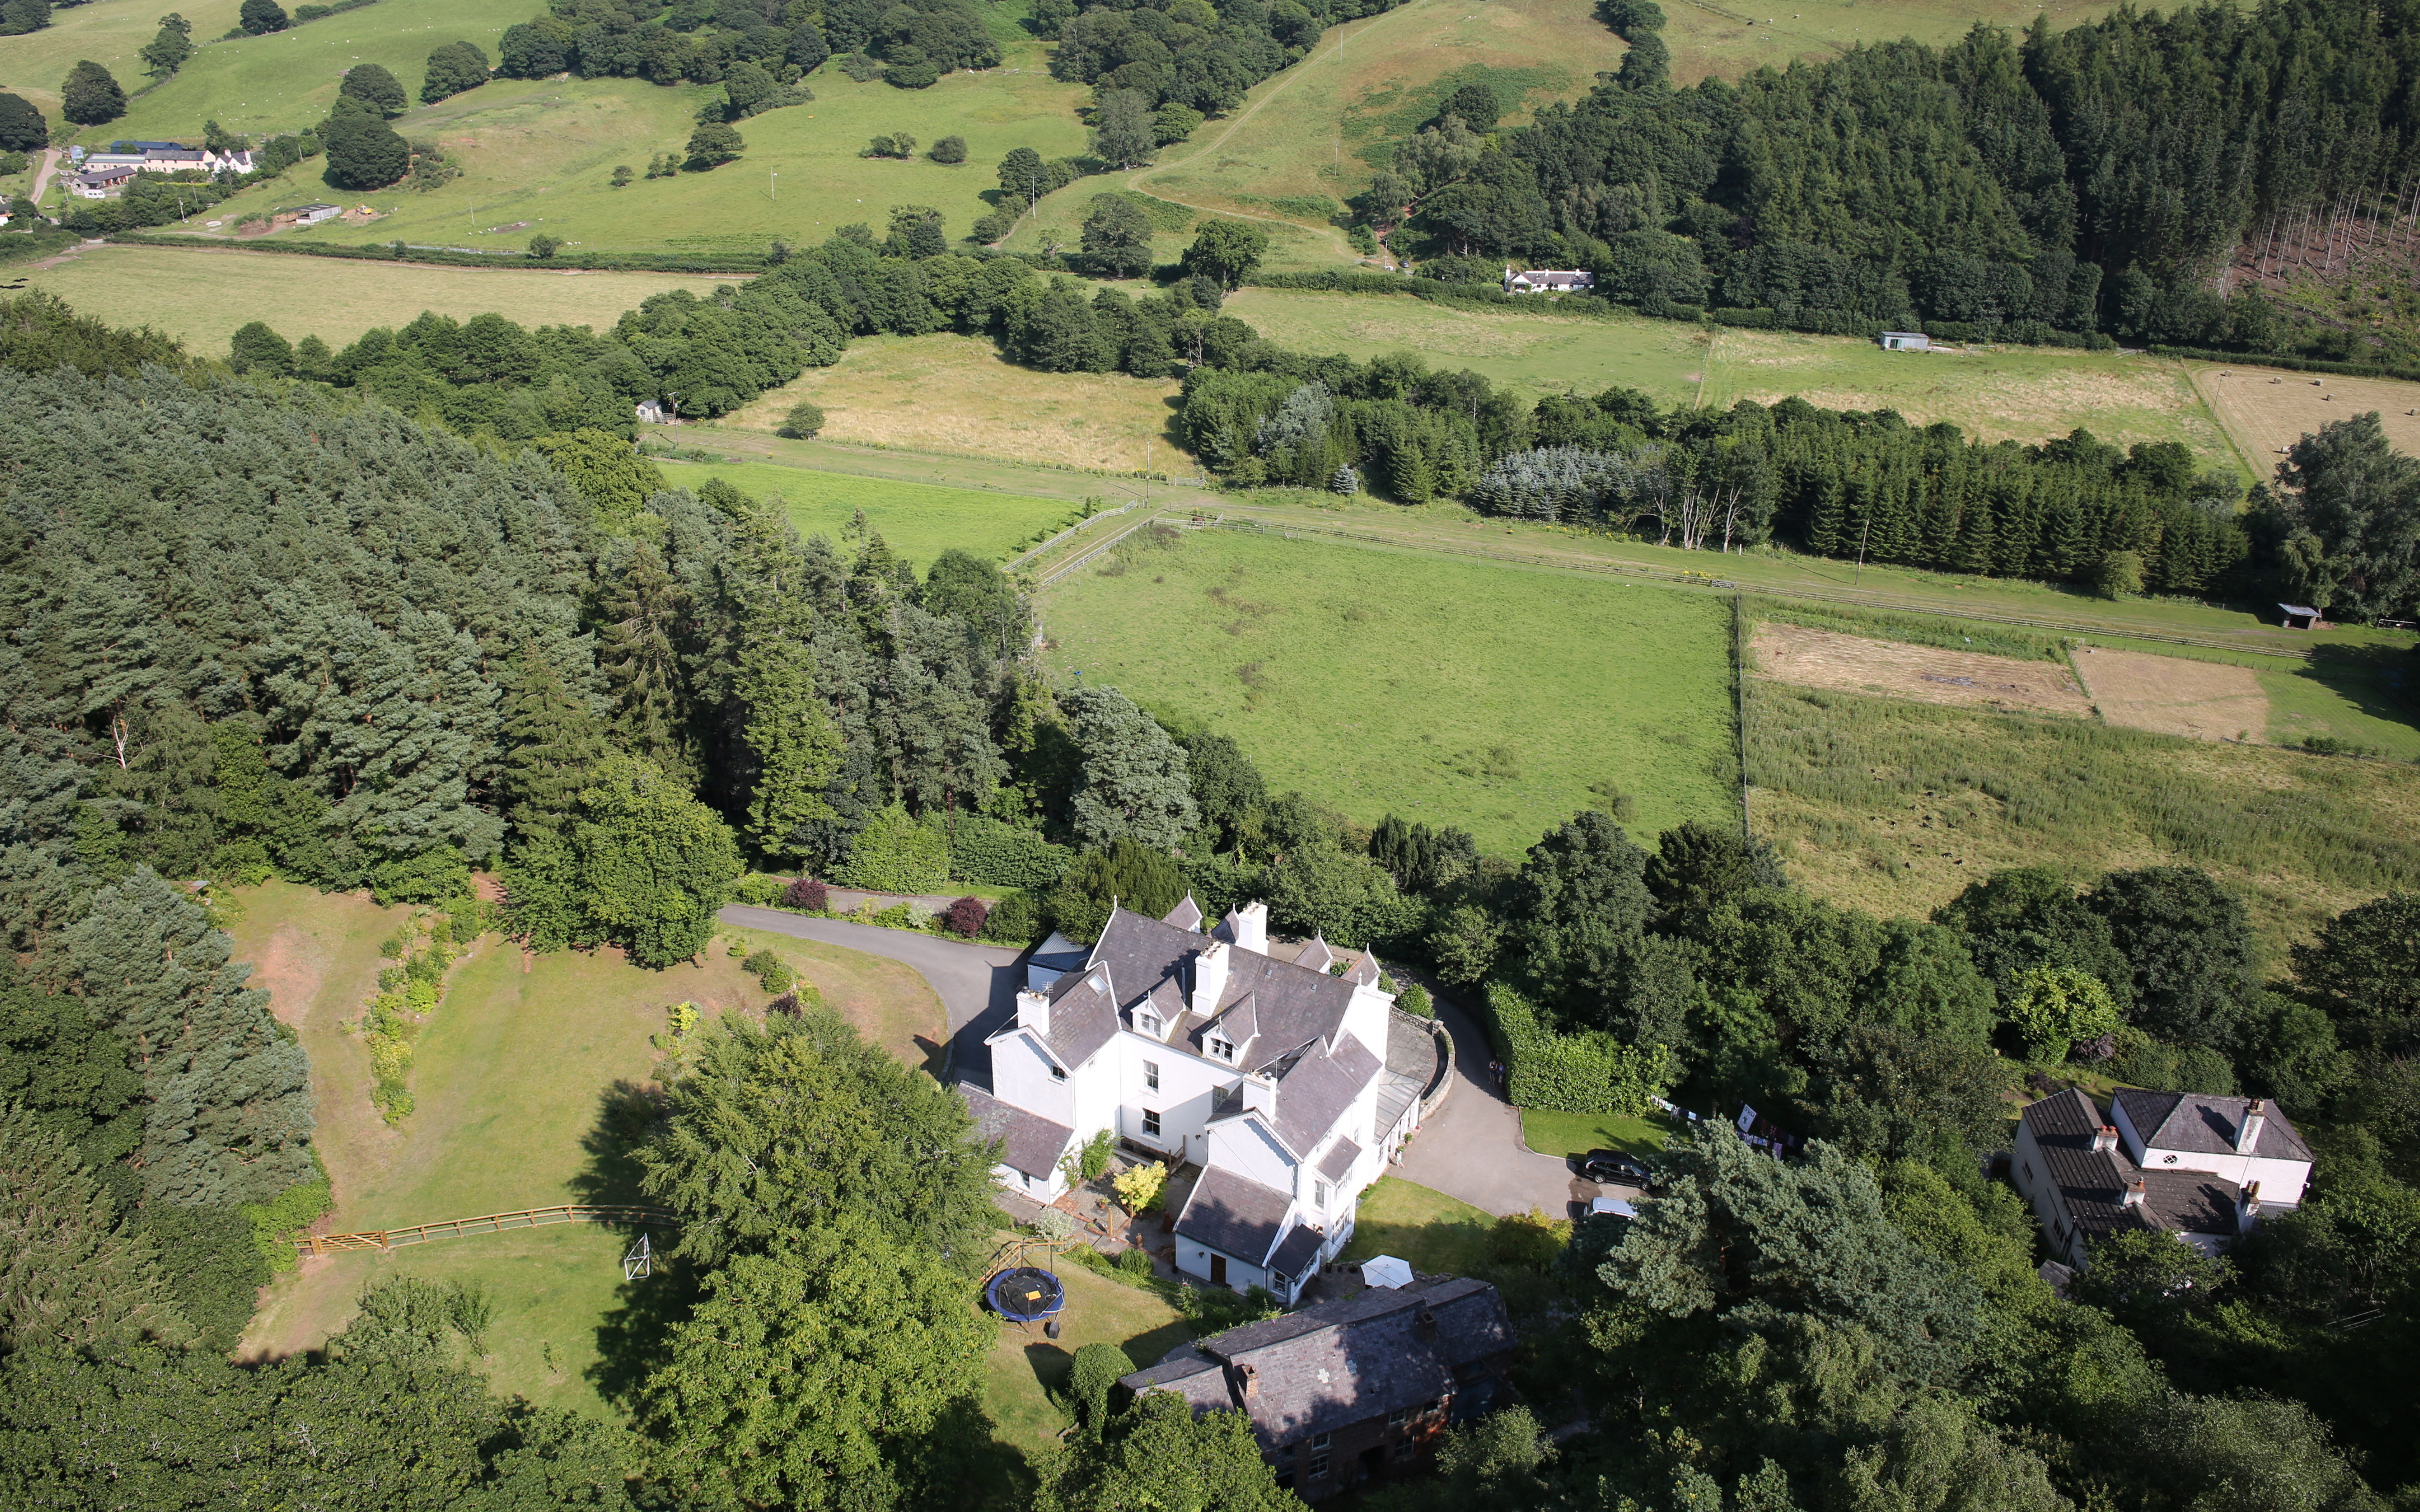 longstaff-media-drone-photograph-North-Wales.JPG#asset:481